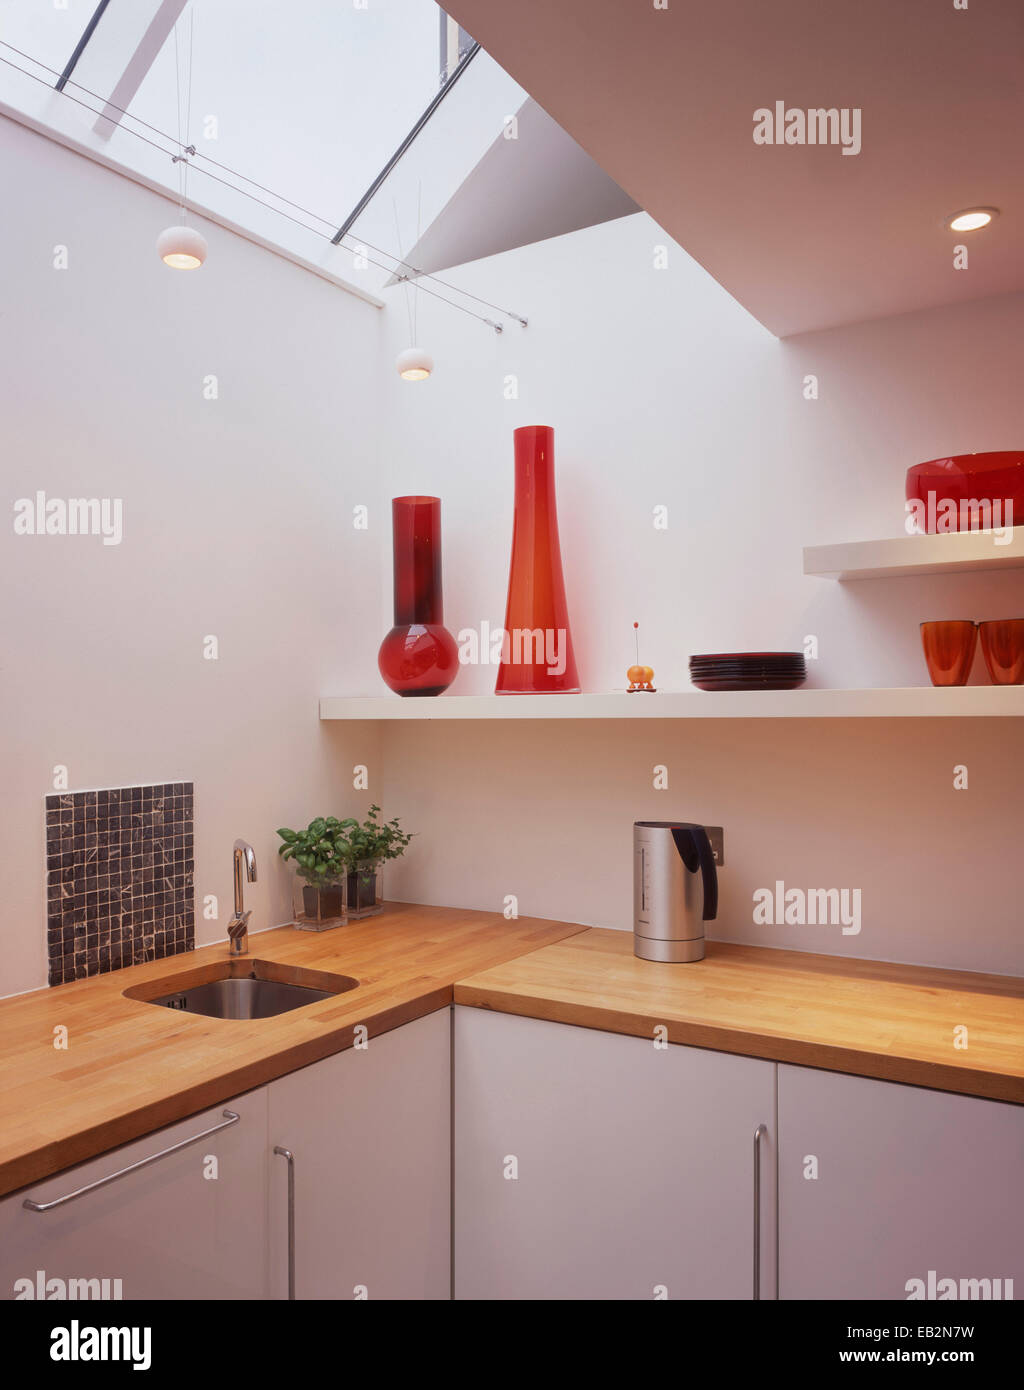 Red glassware on kitchen shelving under skylight in converted Grainstore, Perthshire, Scotland, UK. - Stock Image